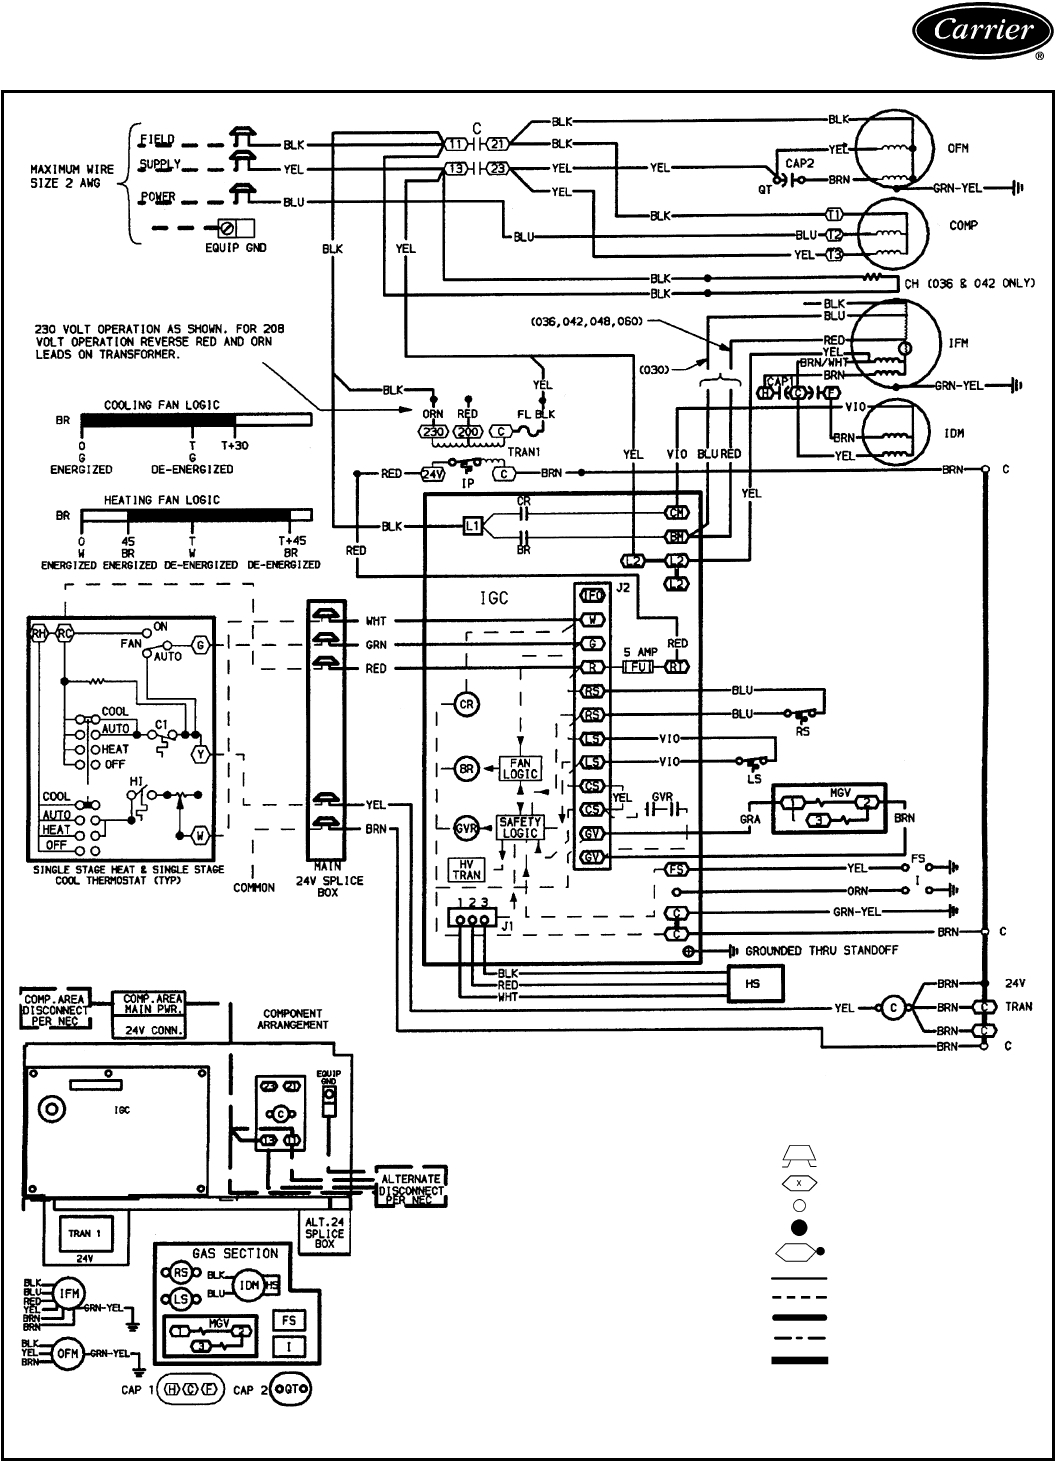 carrier infinity thermostat wiring diagram | free wiring ... mitsubishi mini split system wiring diagram carrier split system wiring diagrams